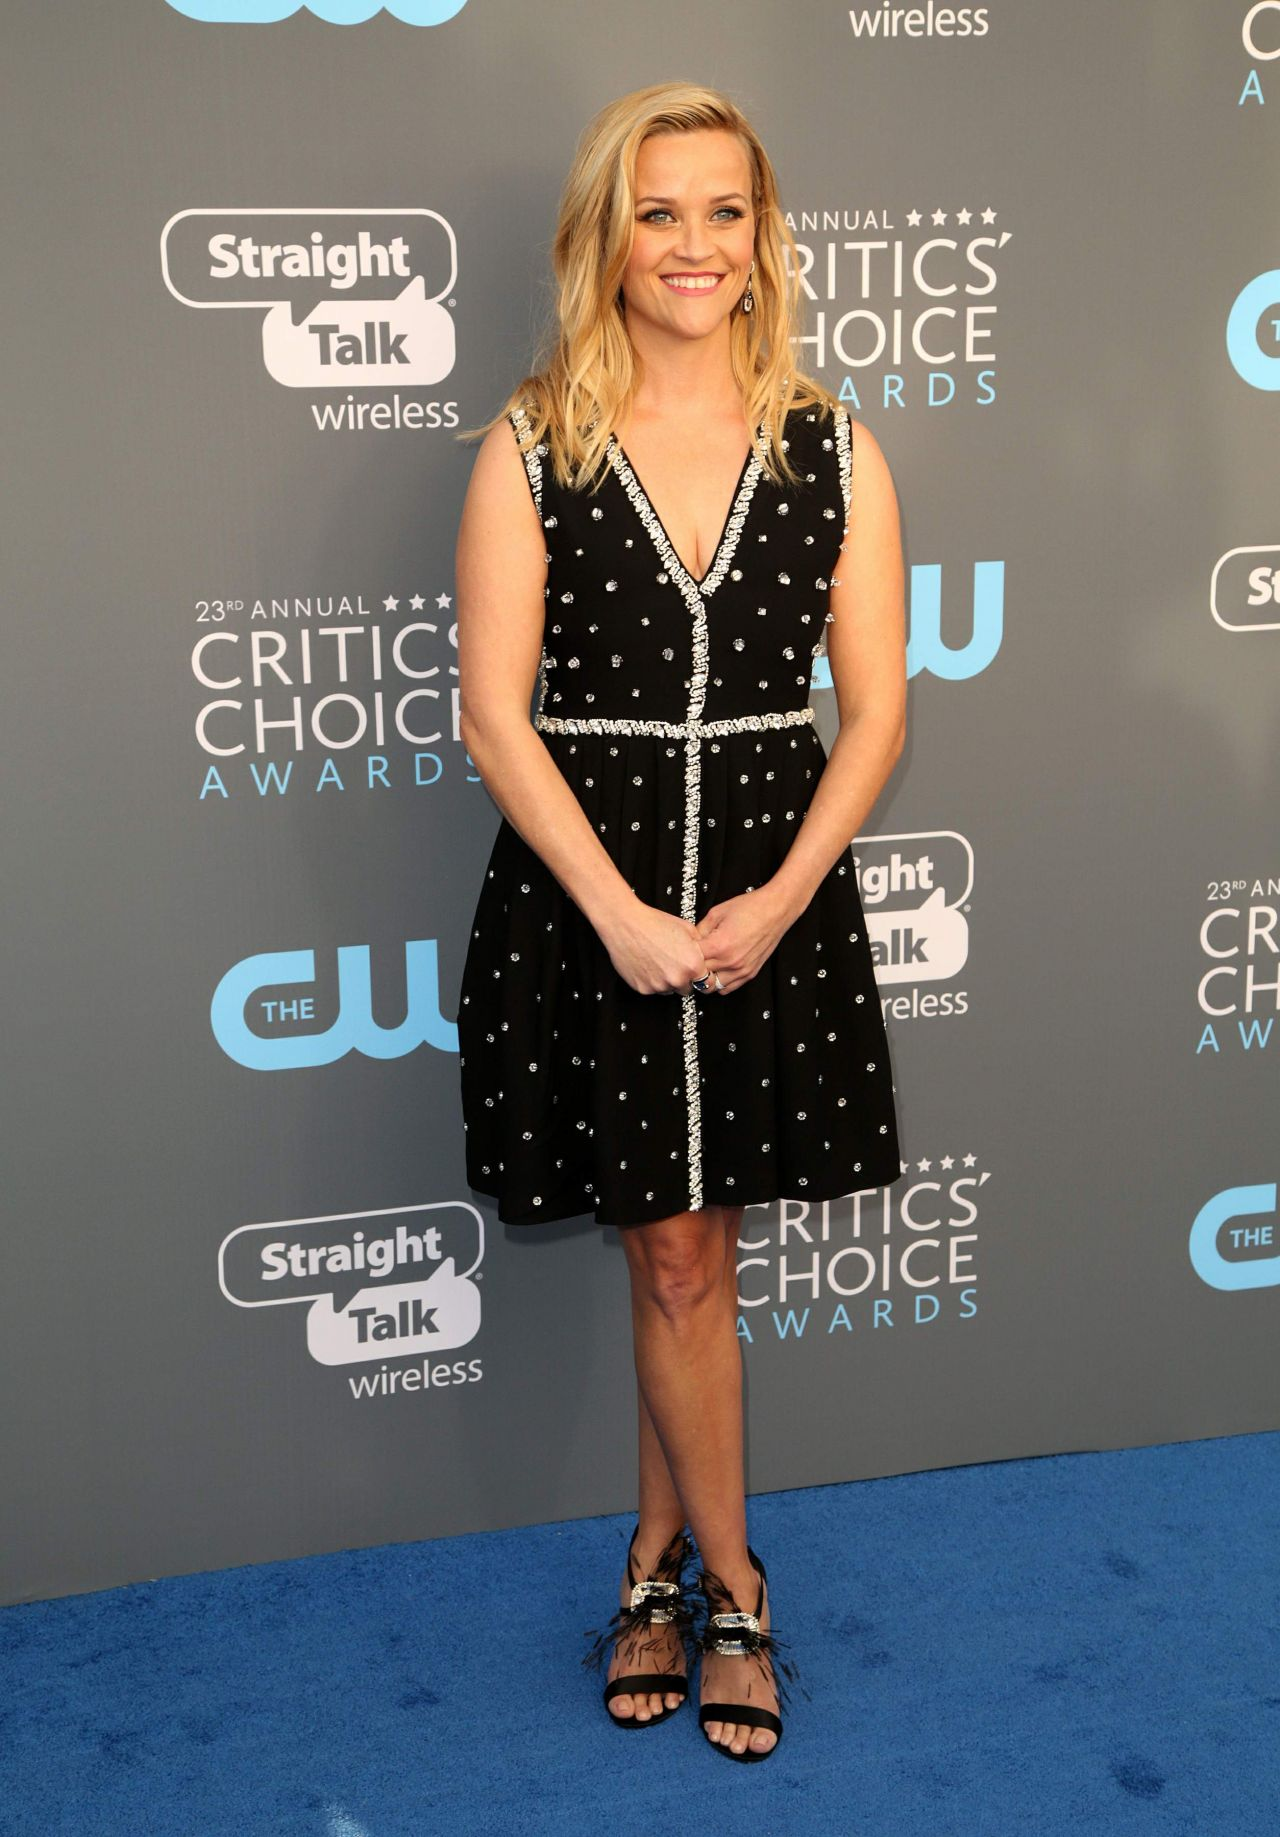 http://celebmafia.com/wp-content/uploads/2018/01/reese-witherspoon-2018-critics-choice-awards-0.jpg